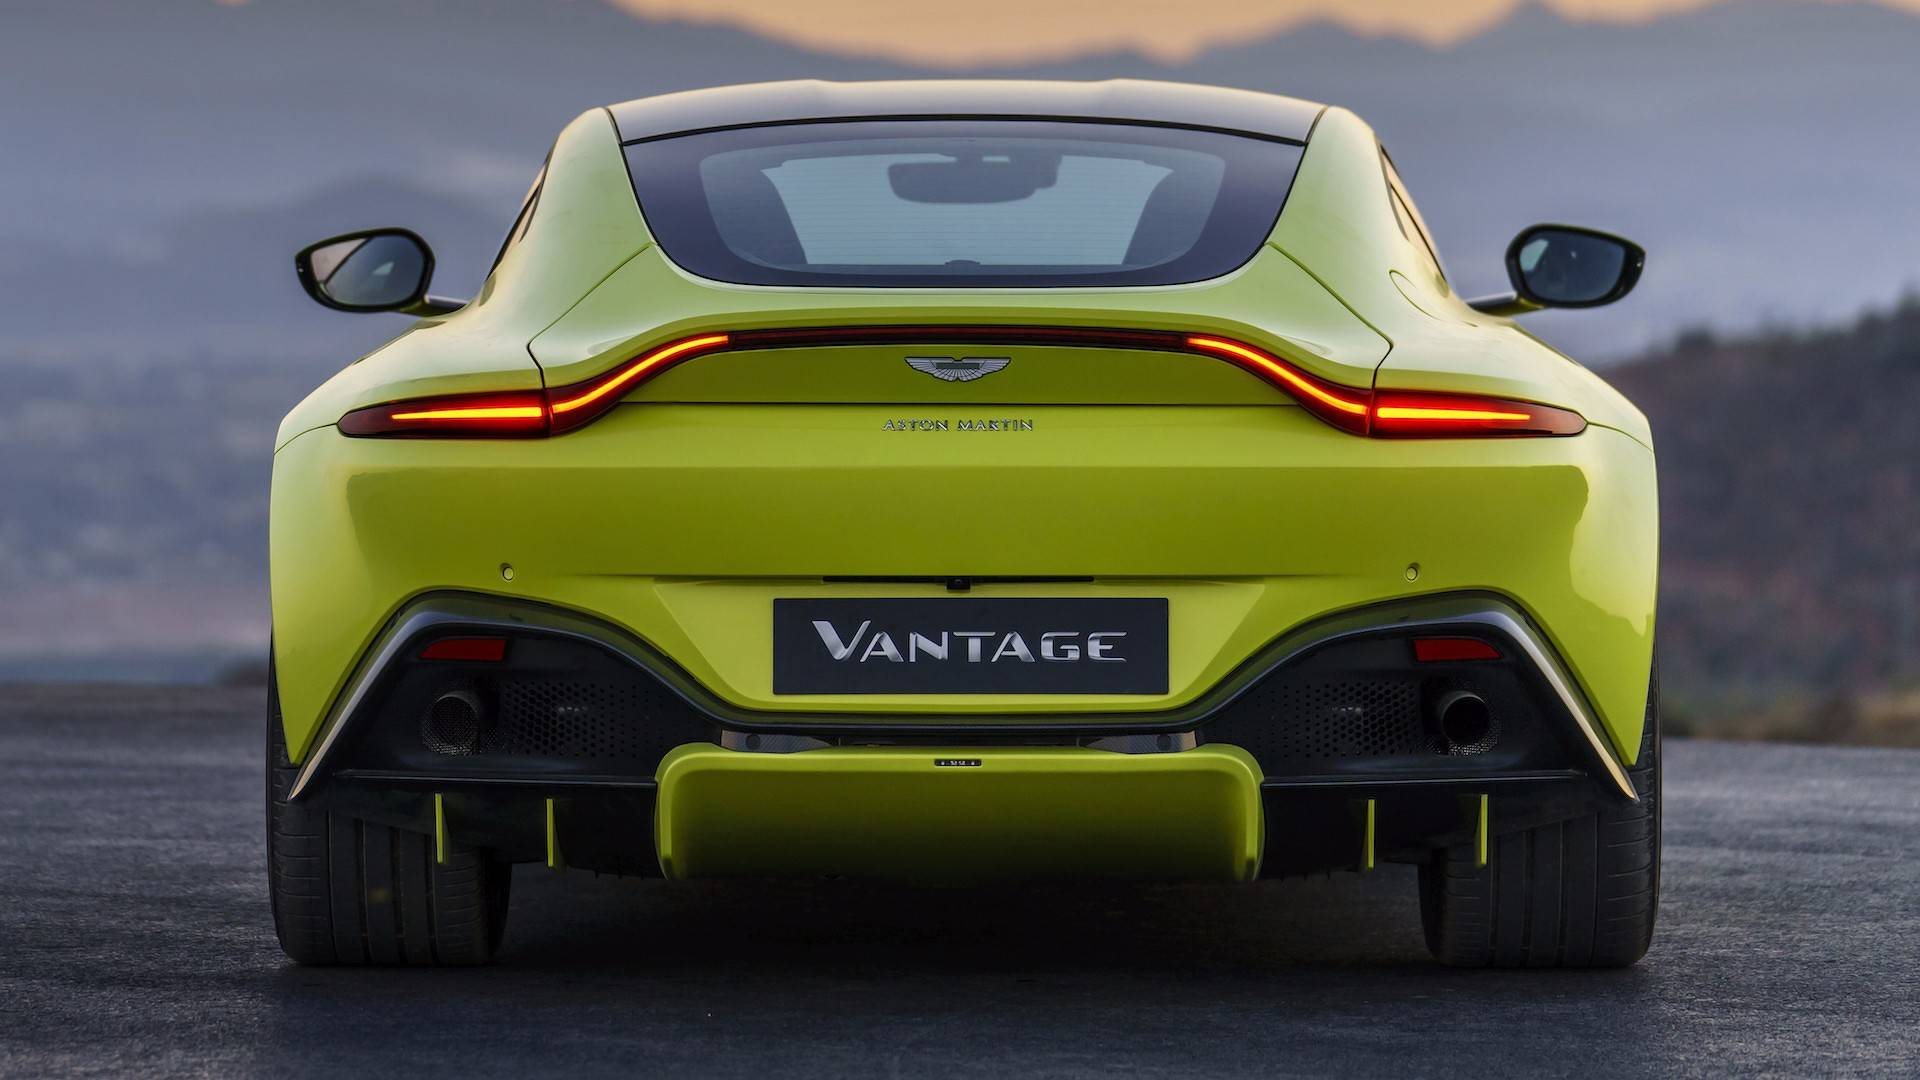 Aston Martin Vantage Vs Old Model Differences And Improvements - Aston martin vantage 2018